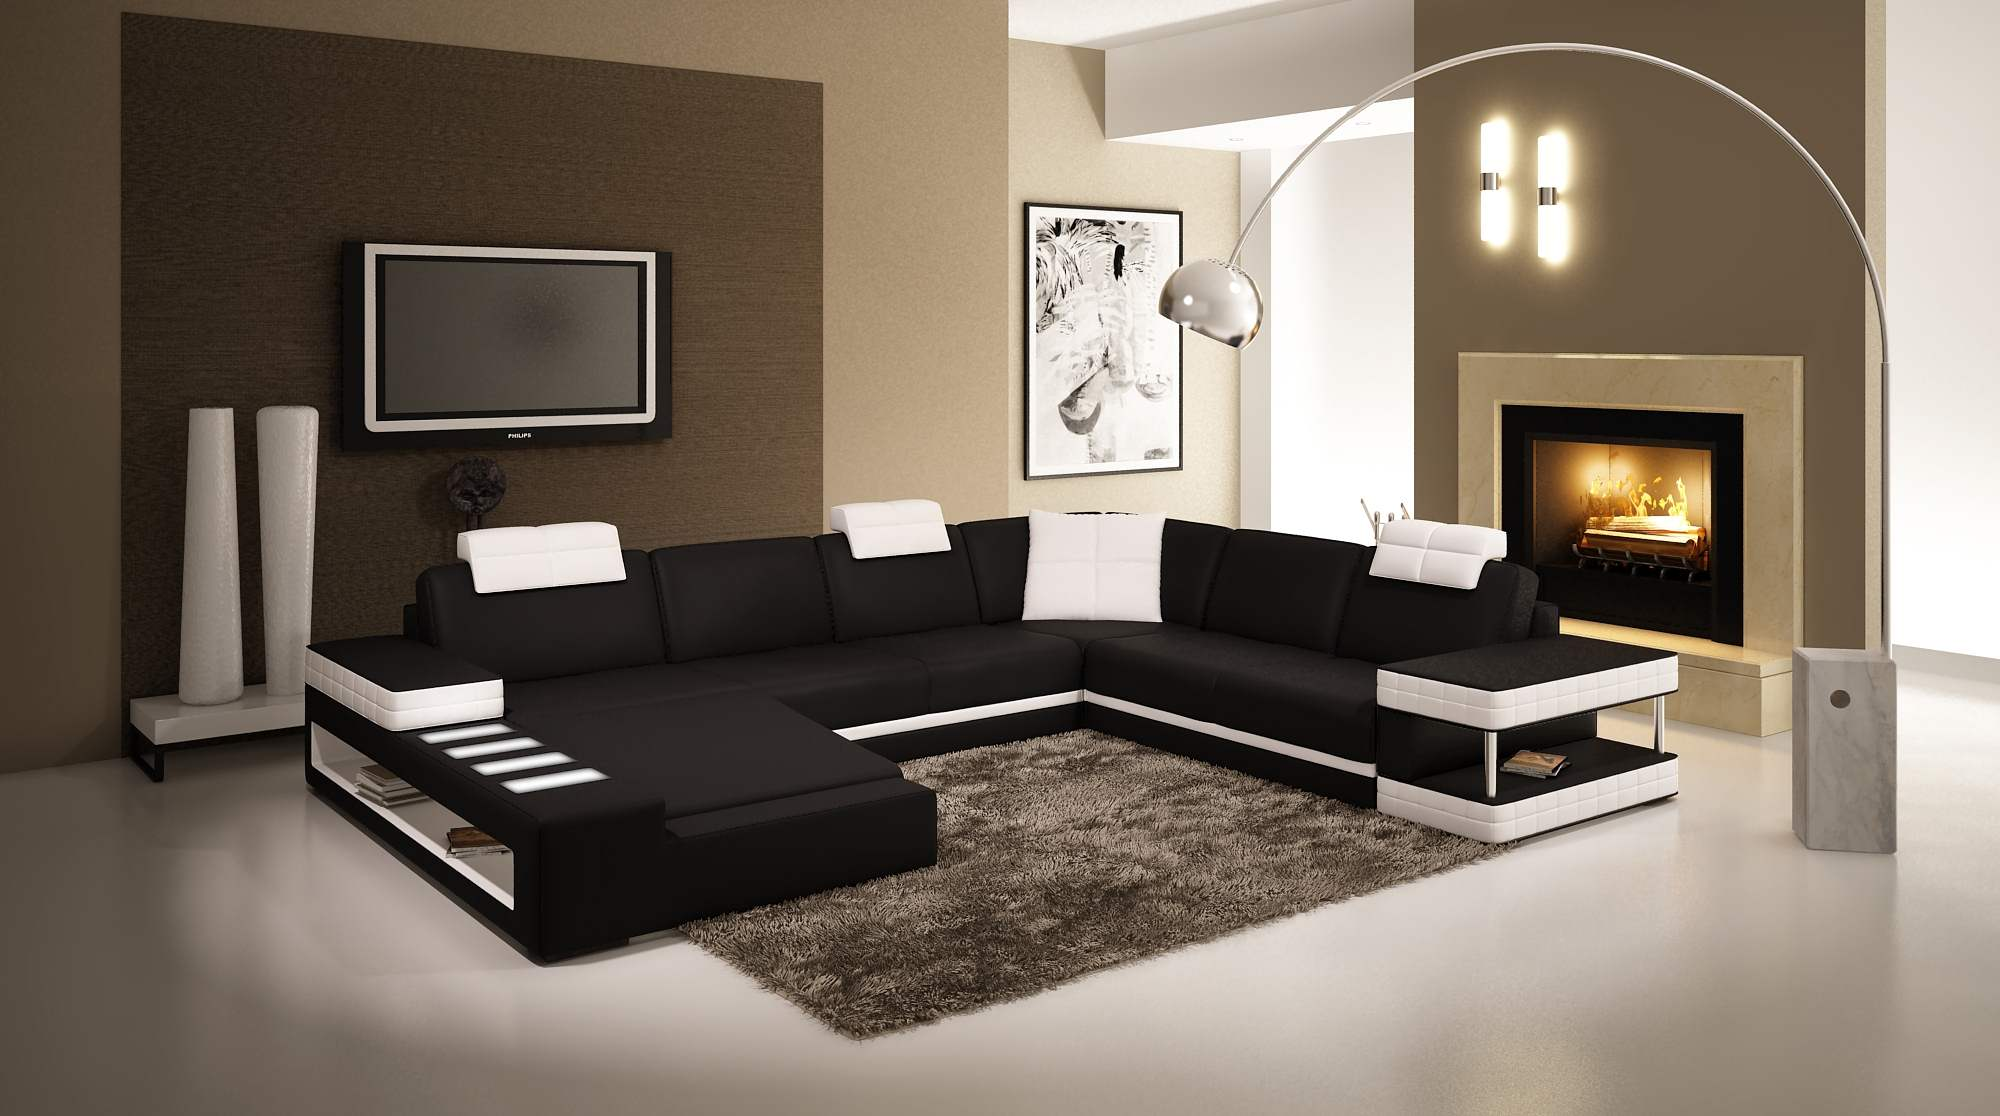 Deco in paris canape d angle panoramique en cuir noir et for Latest drawing room design